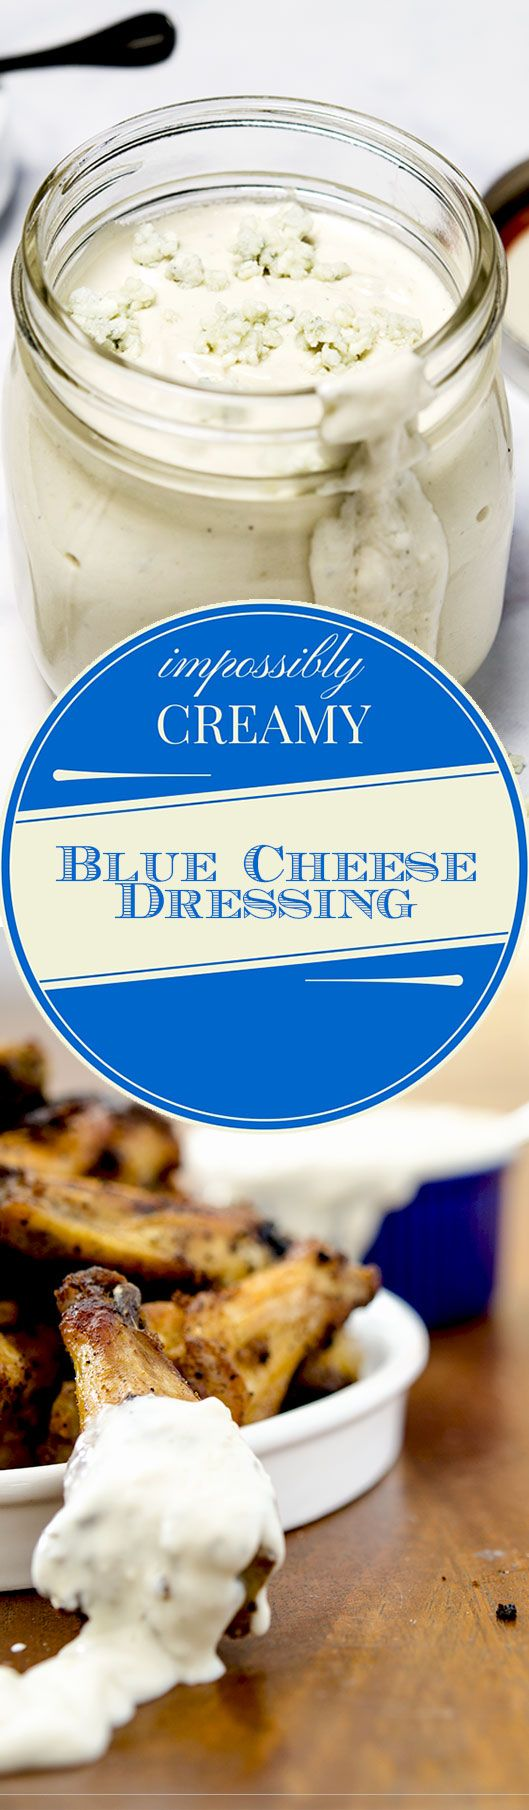 This homemade blue cheese dressing pairs perfectly with crispy baked chicken wings, an iceberg wedge salad or as a dipping sauce for vegetables!